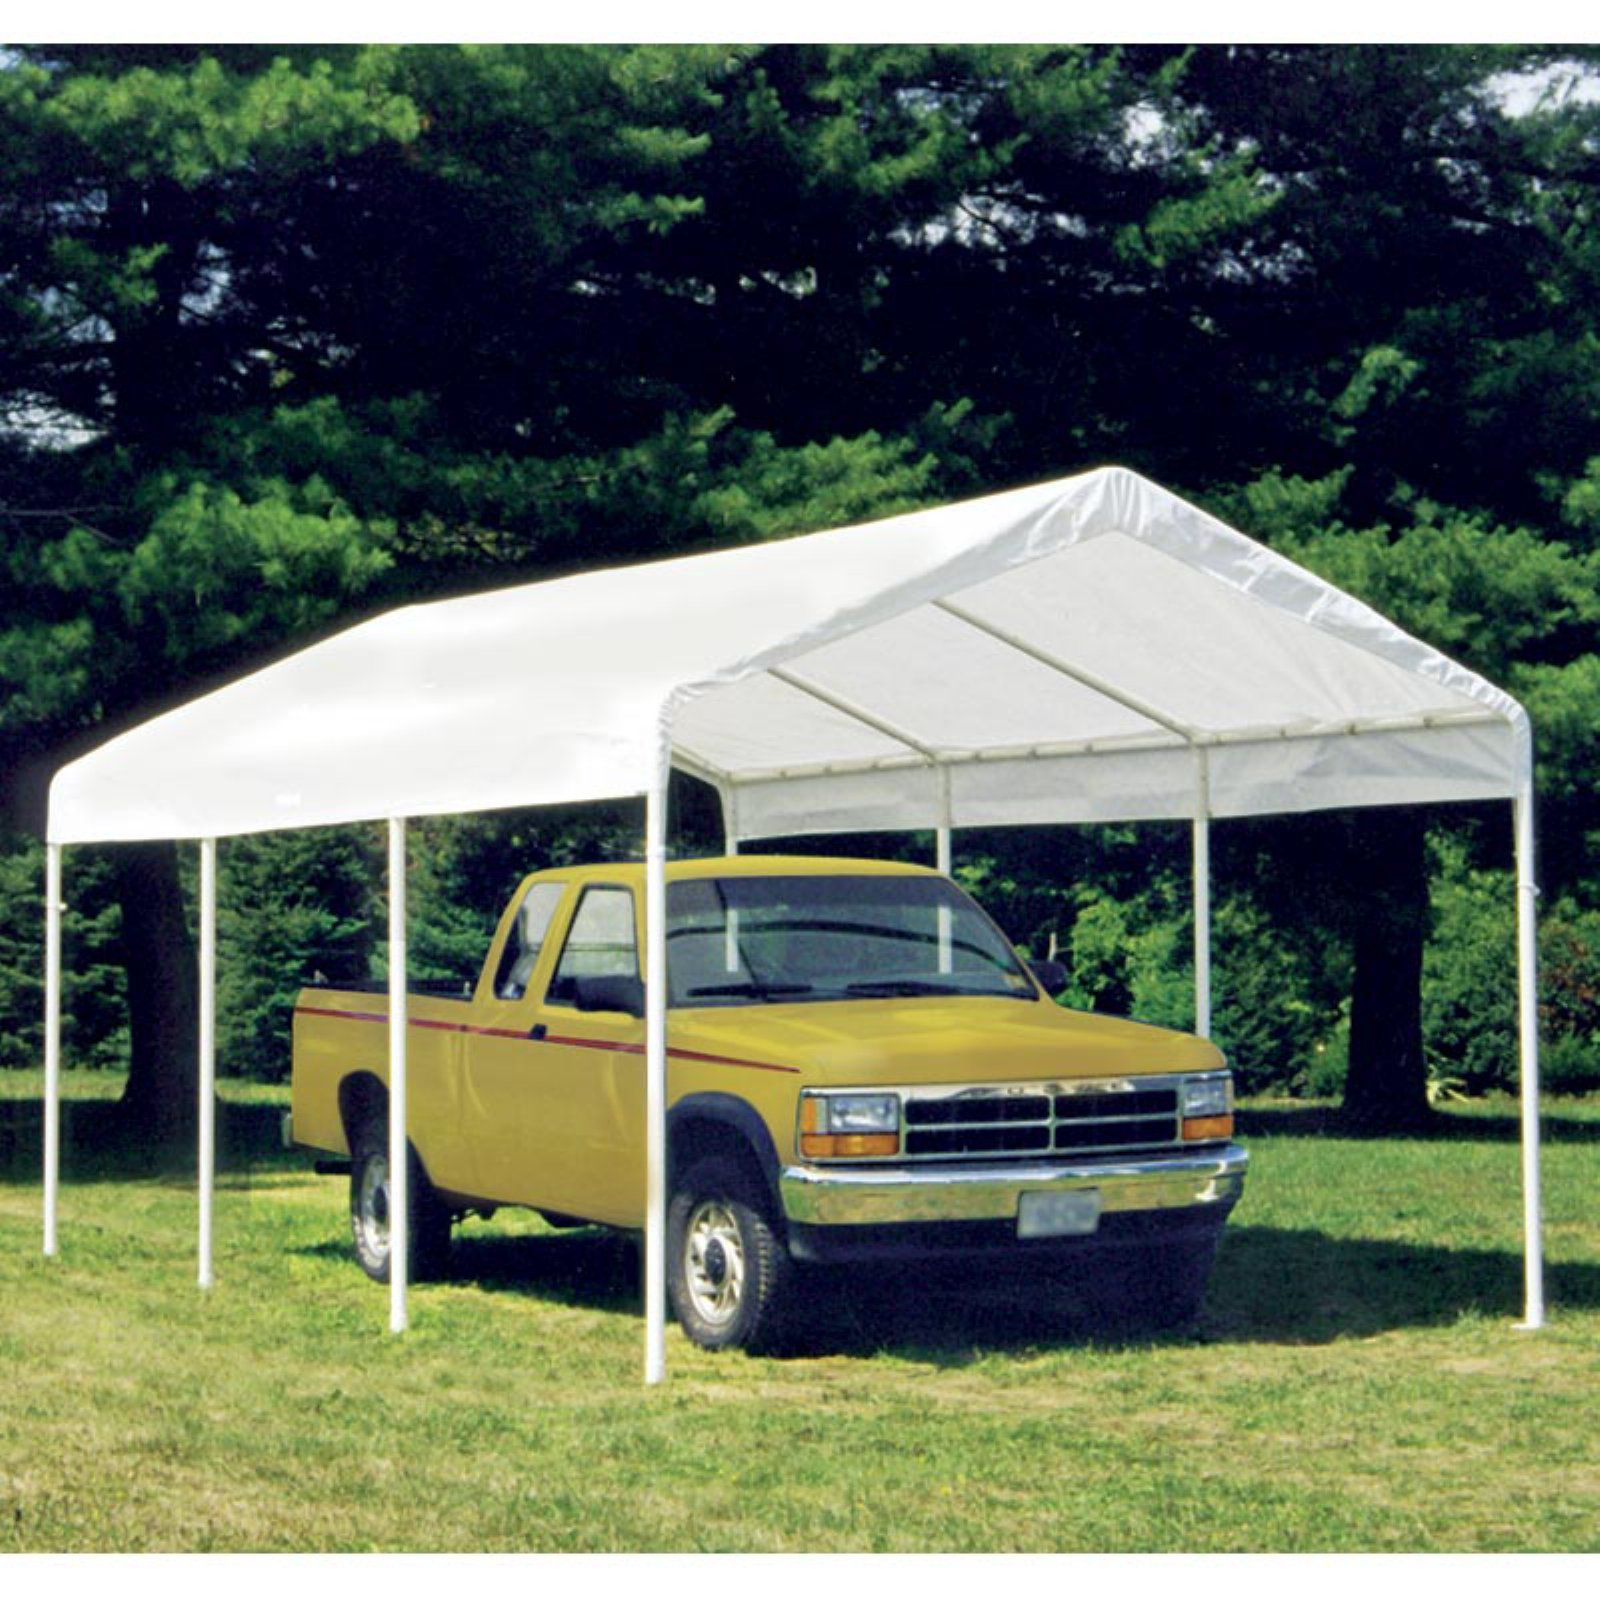 ShelterLogic Canopy Cover with Enclosure Kit 10 x 20 ft